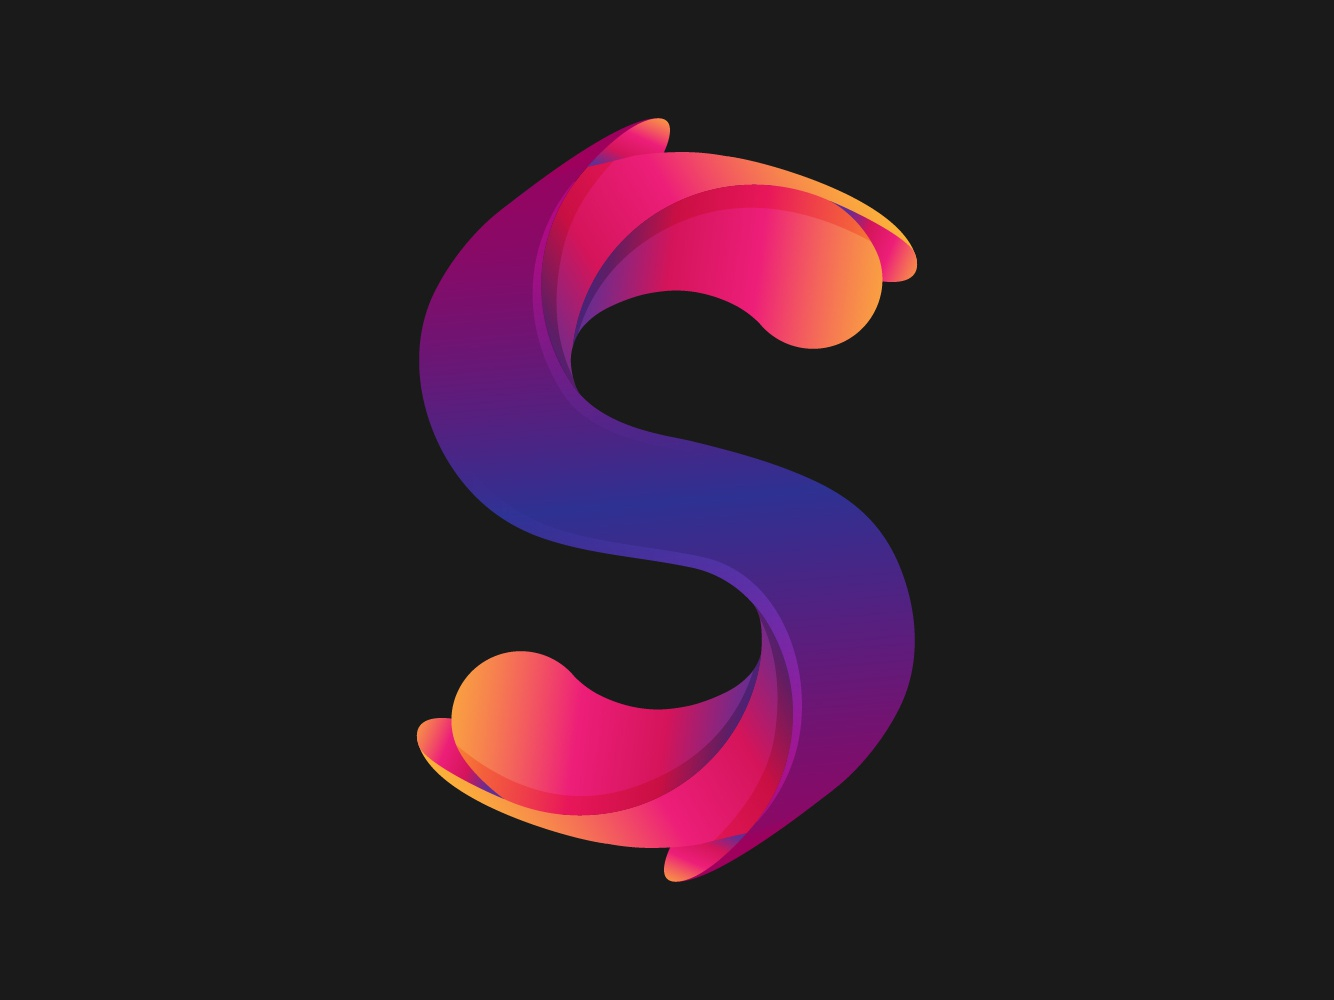 Cool Letter S Designs Logo By Imran Shojib Dribbble